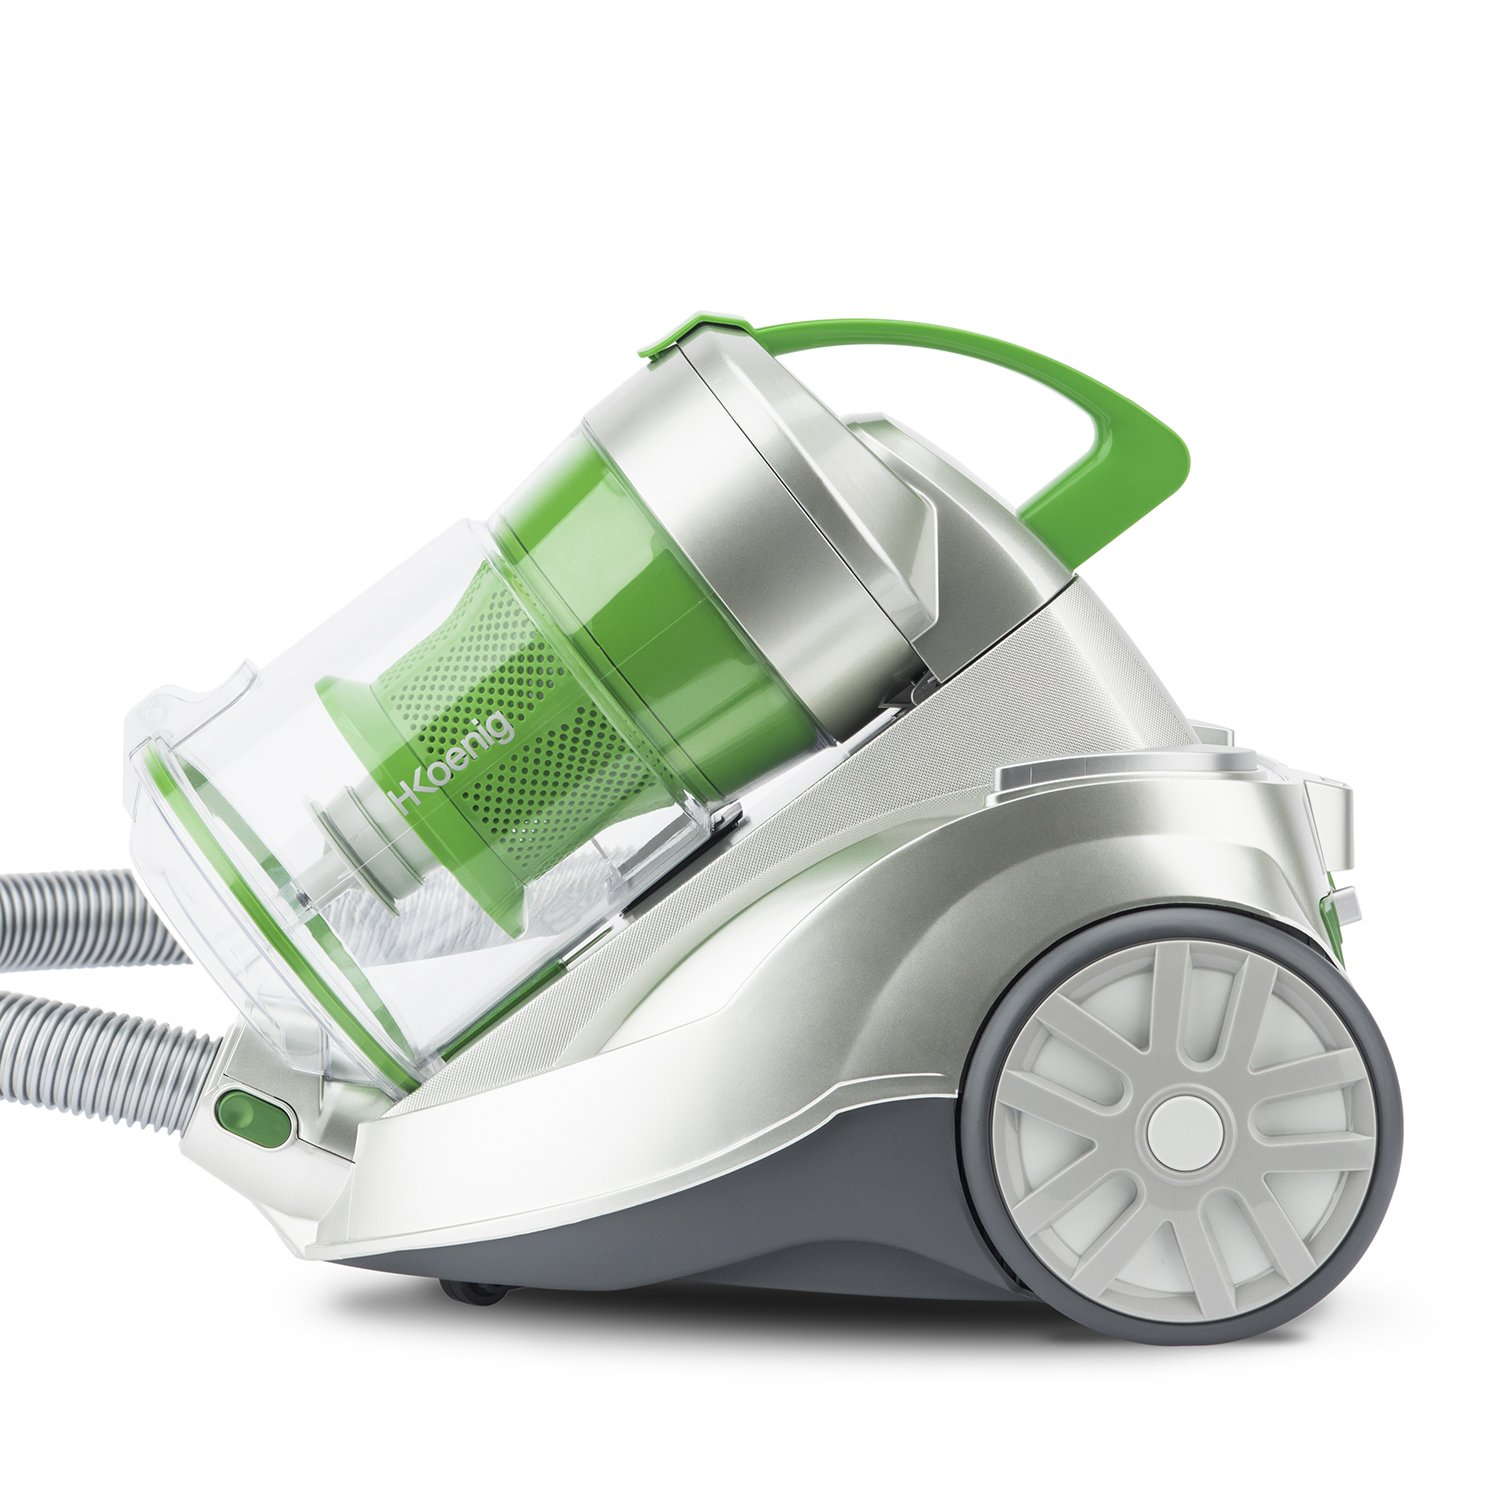 Aspirateur triple A floor+